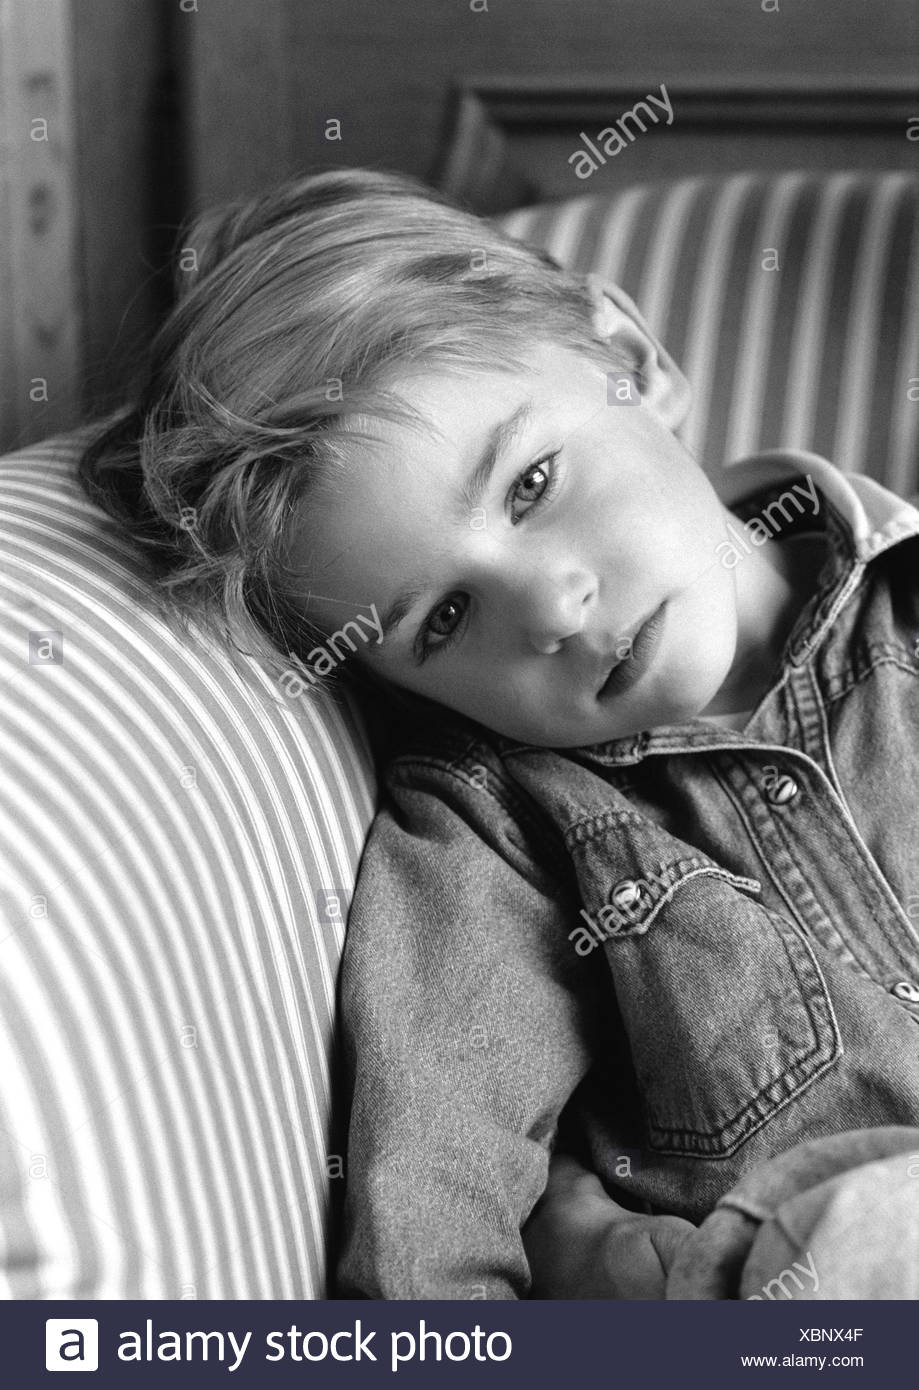 Young boy leaning head on chair arm, black and white portrait. - Stock Image